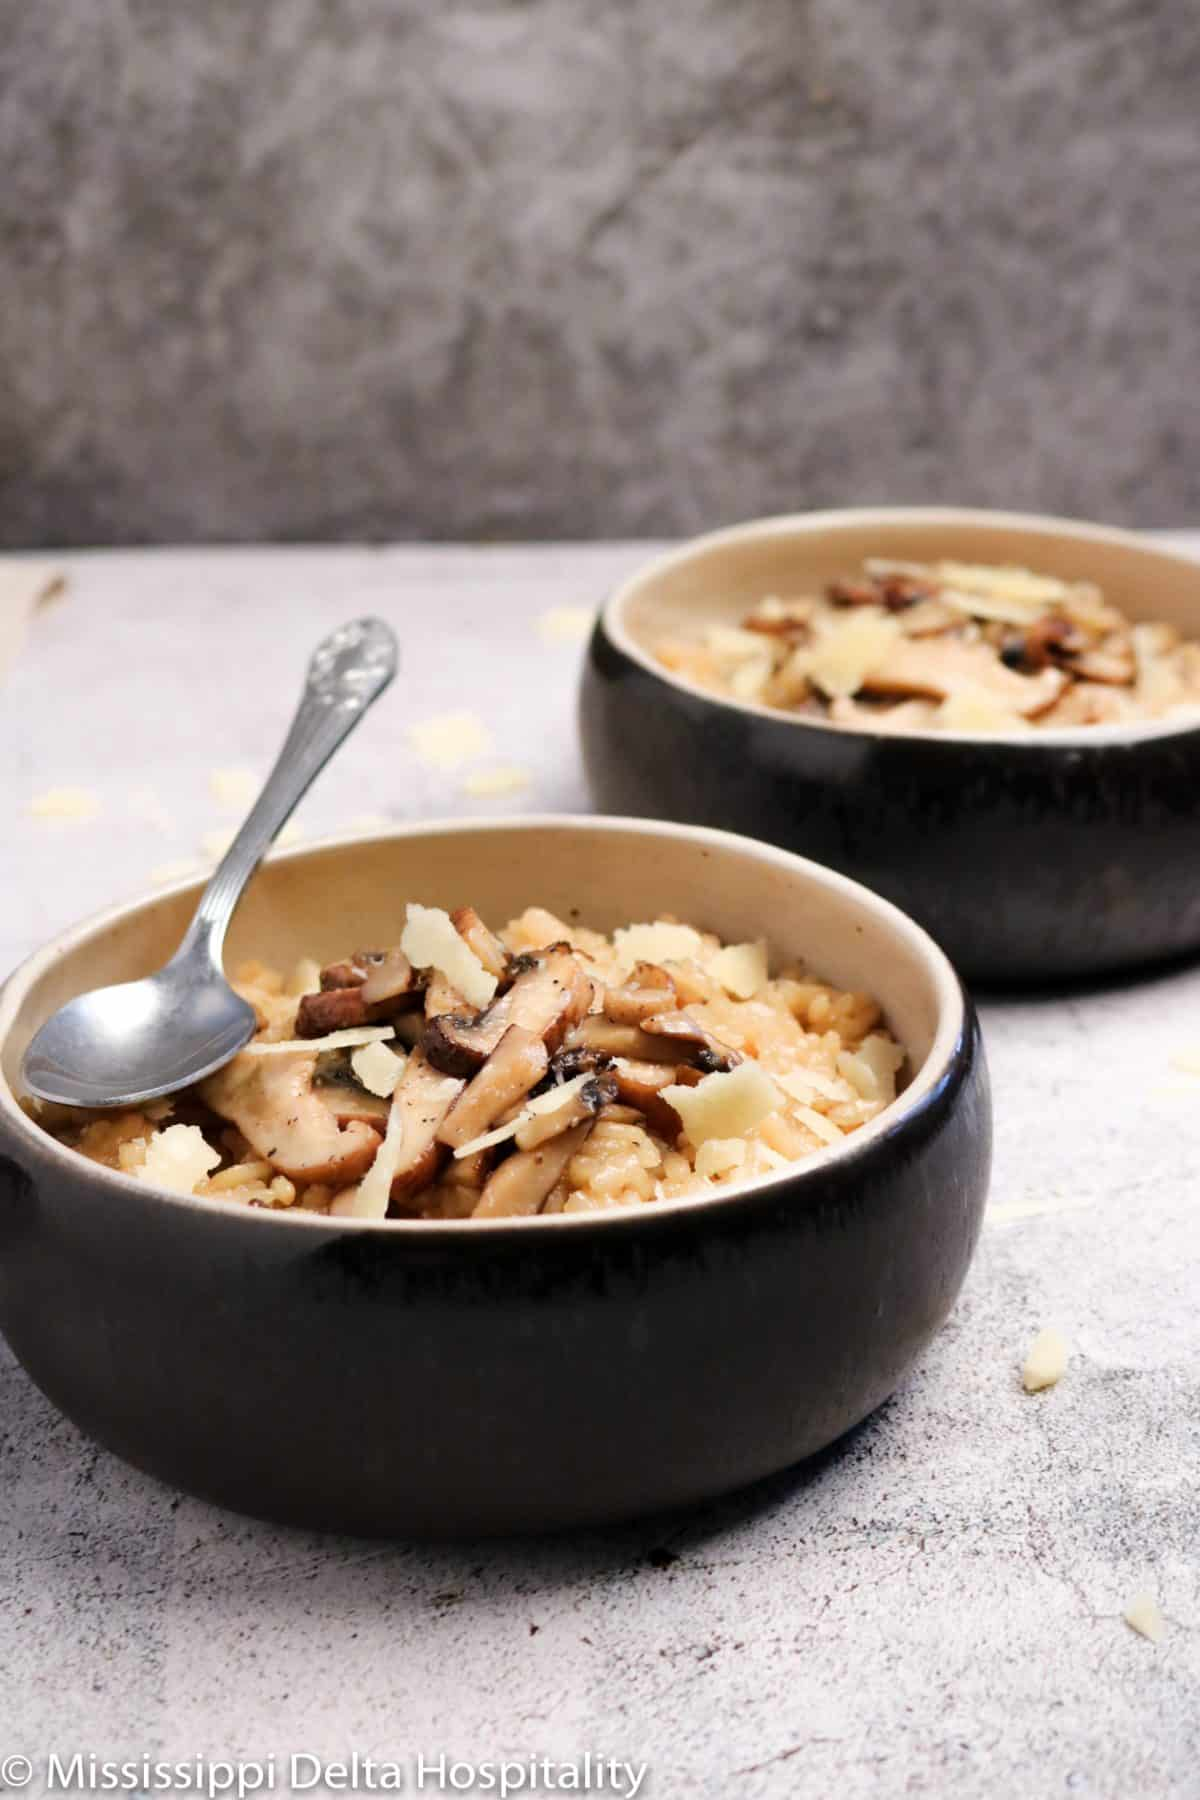 two bowls of mushroom risotto with a silver spoon